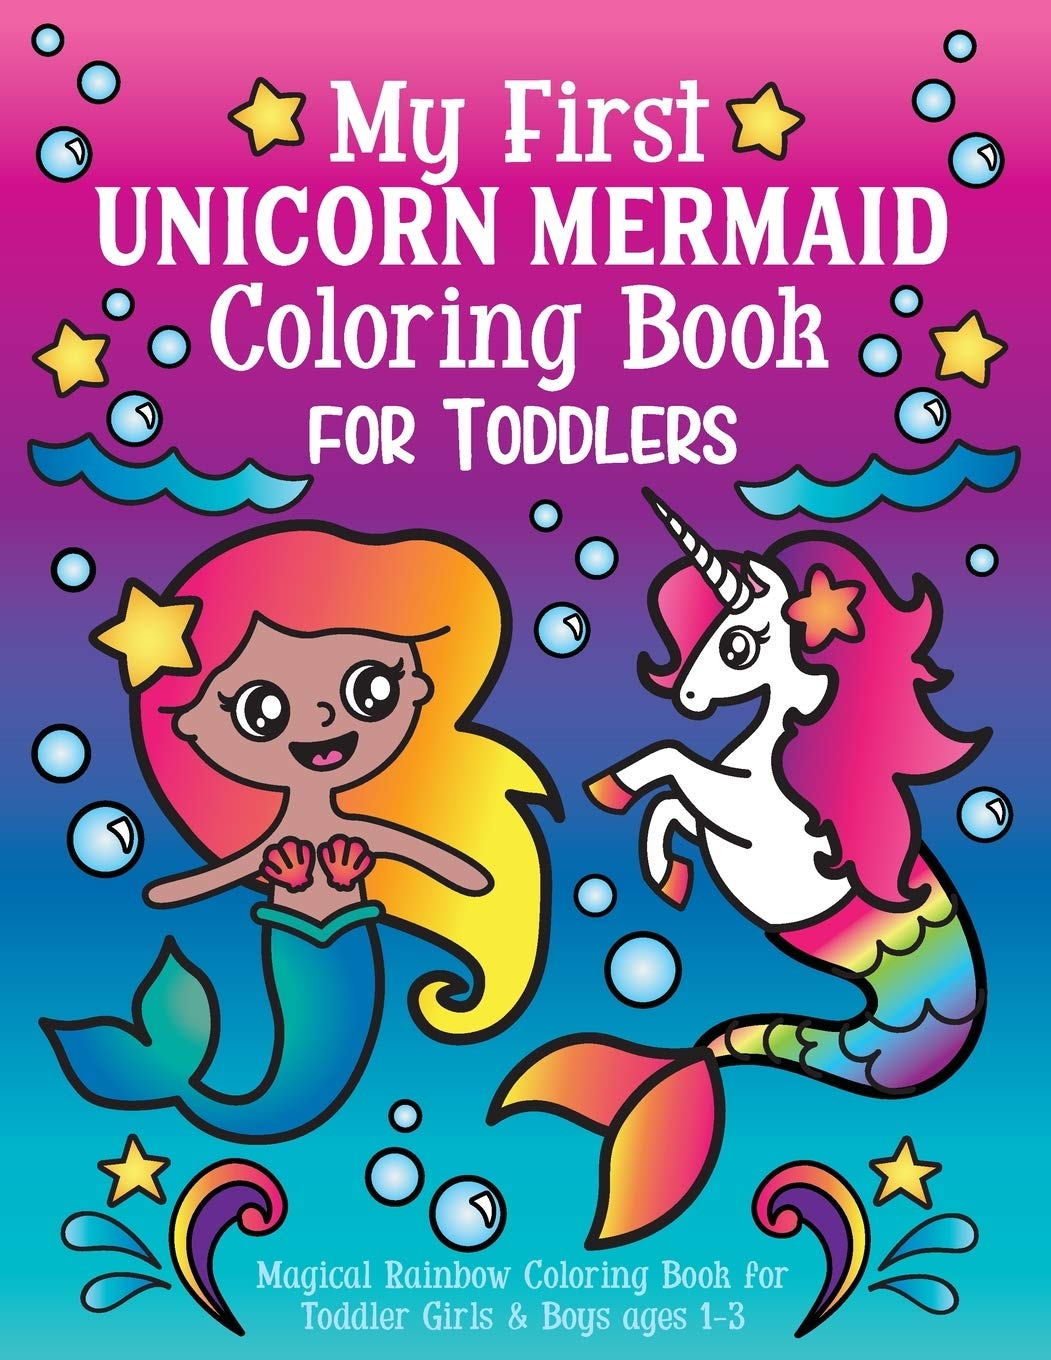 - My First Unicorn Mermaid Coloring Book For Toddlers: Magical